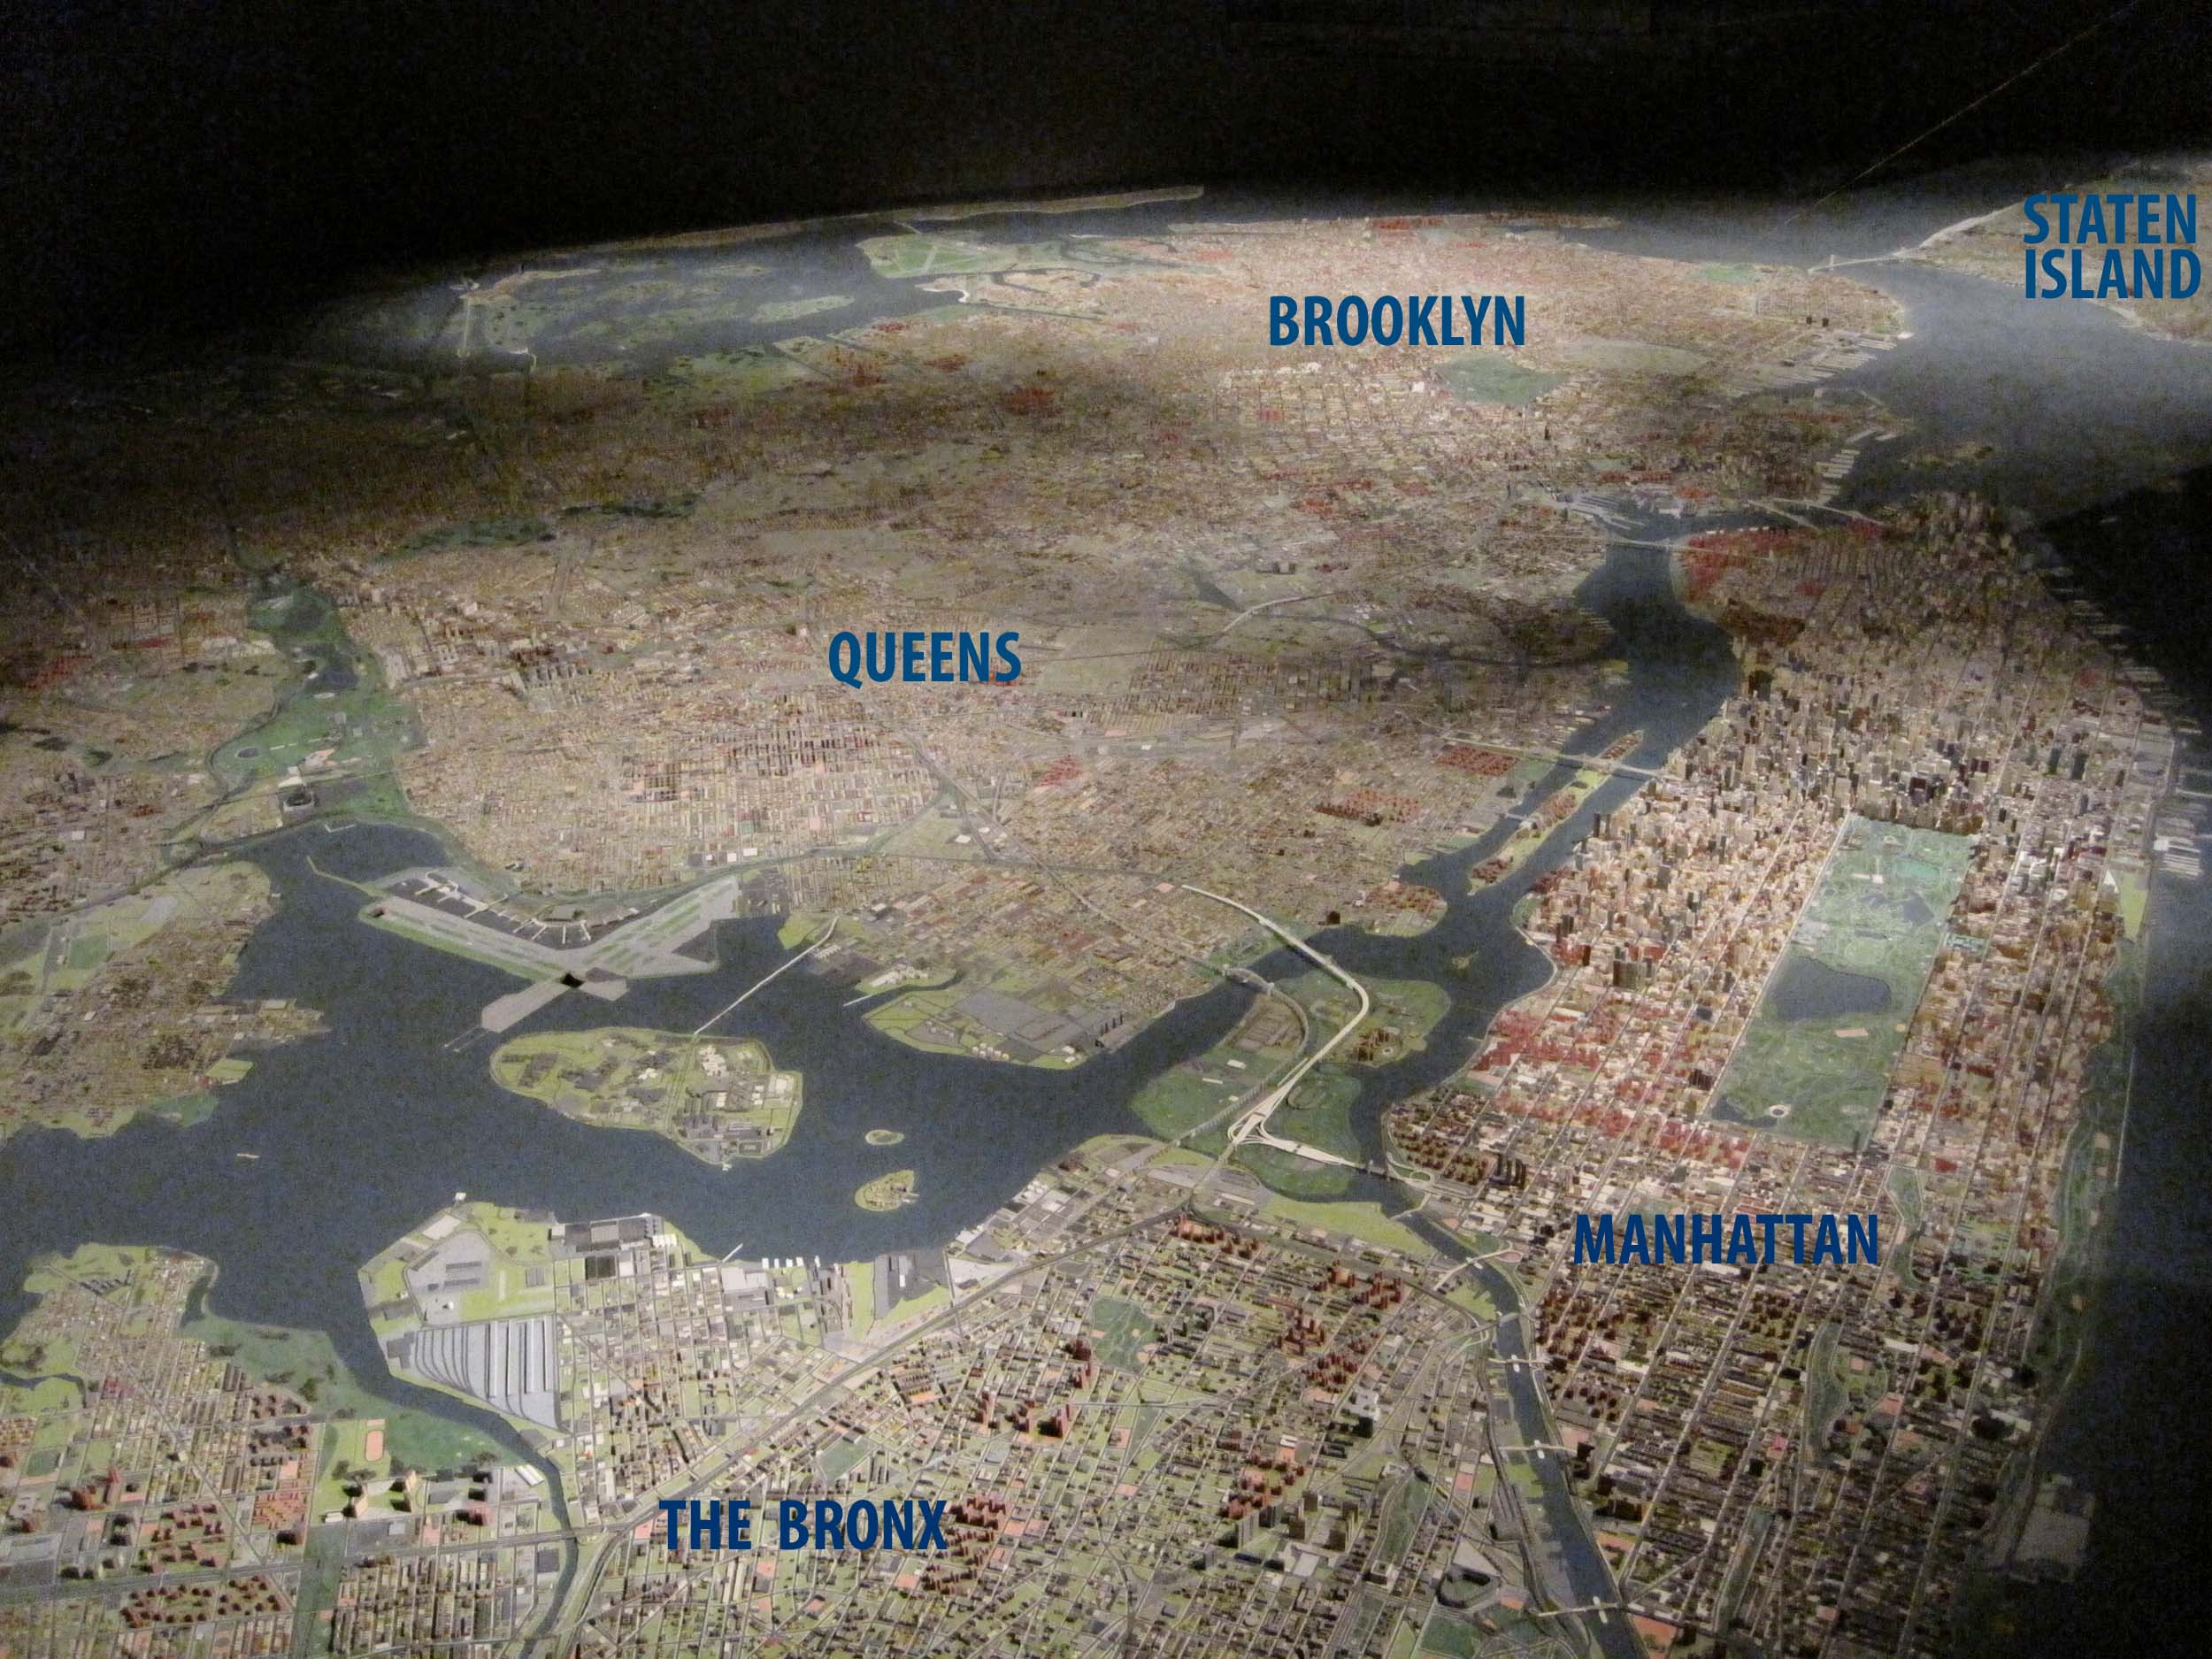 map of new york city boroughs with Aerial View Of Nyc on Titheygoesnewyork blogspot likewise New york boroughs in addition Atlanta Neighborhood 18 X 24 Freddie Falcon Red Poster also Index together with Aerial View Of Nyc.